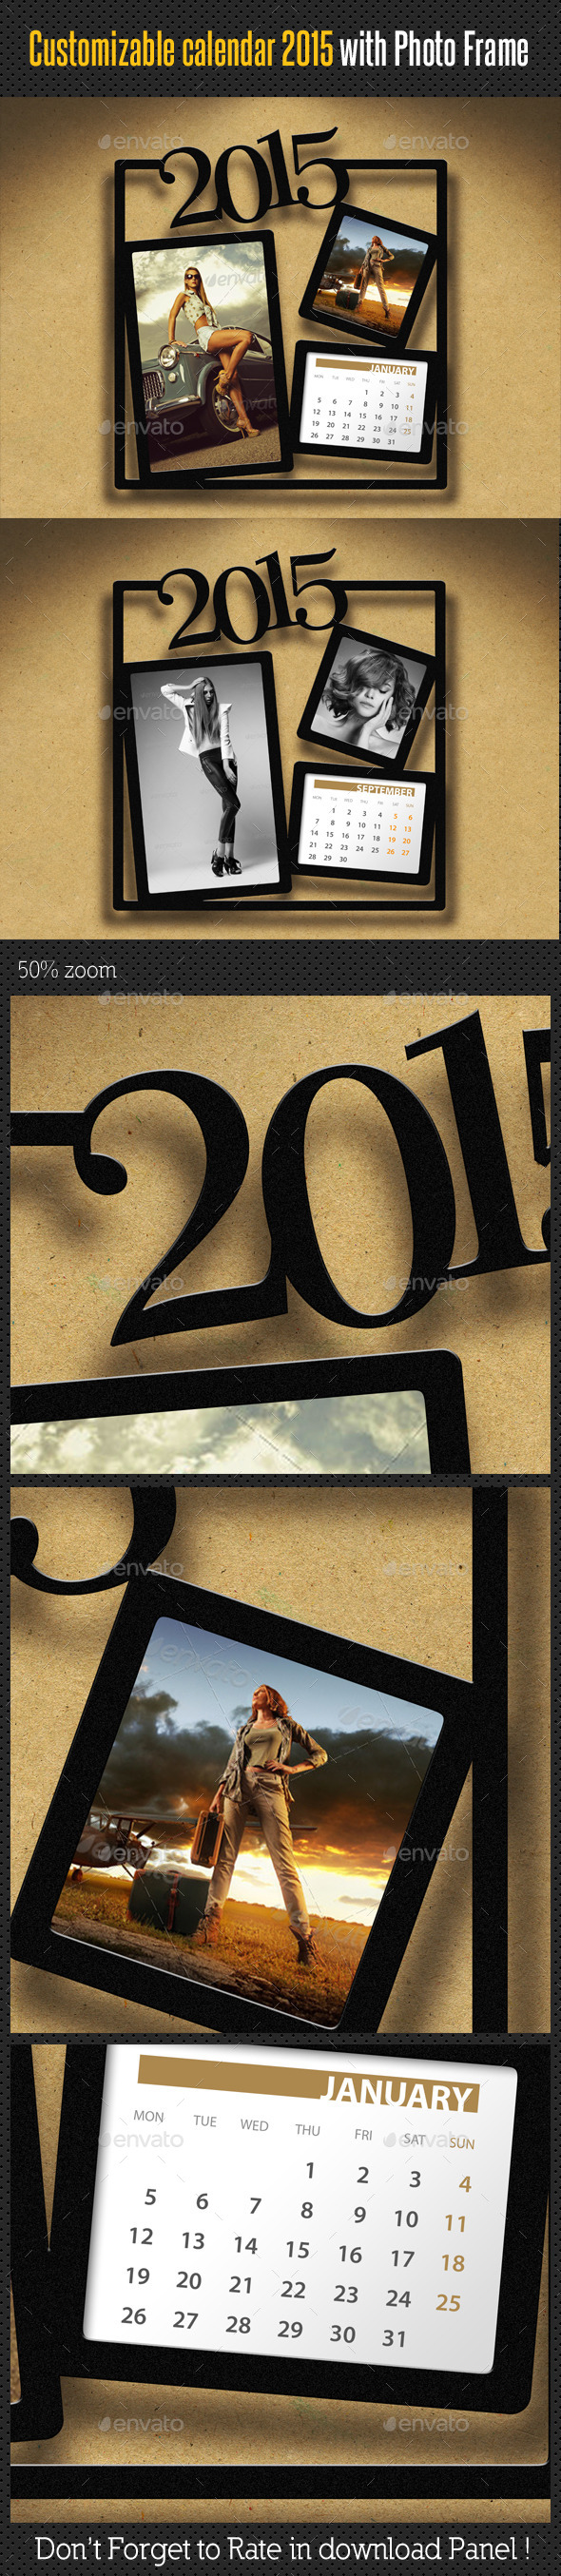 Customizable Calendar 2015 Photo Frame V05